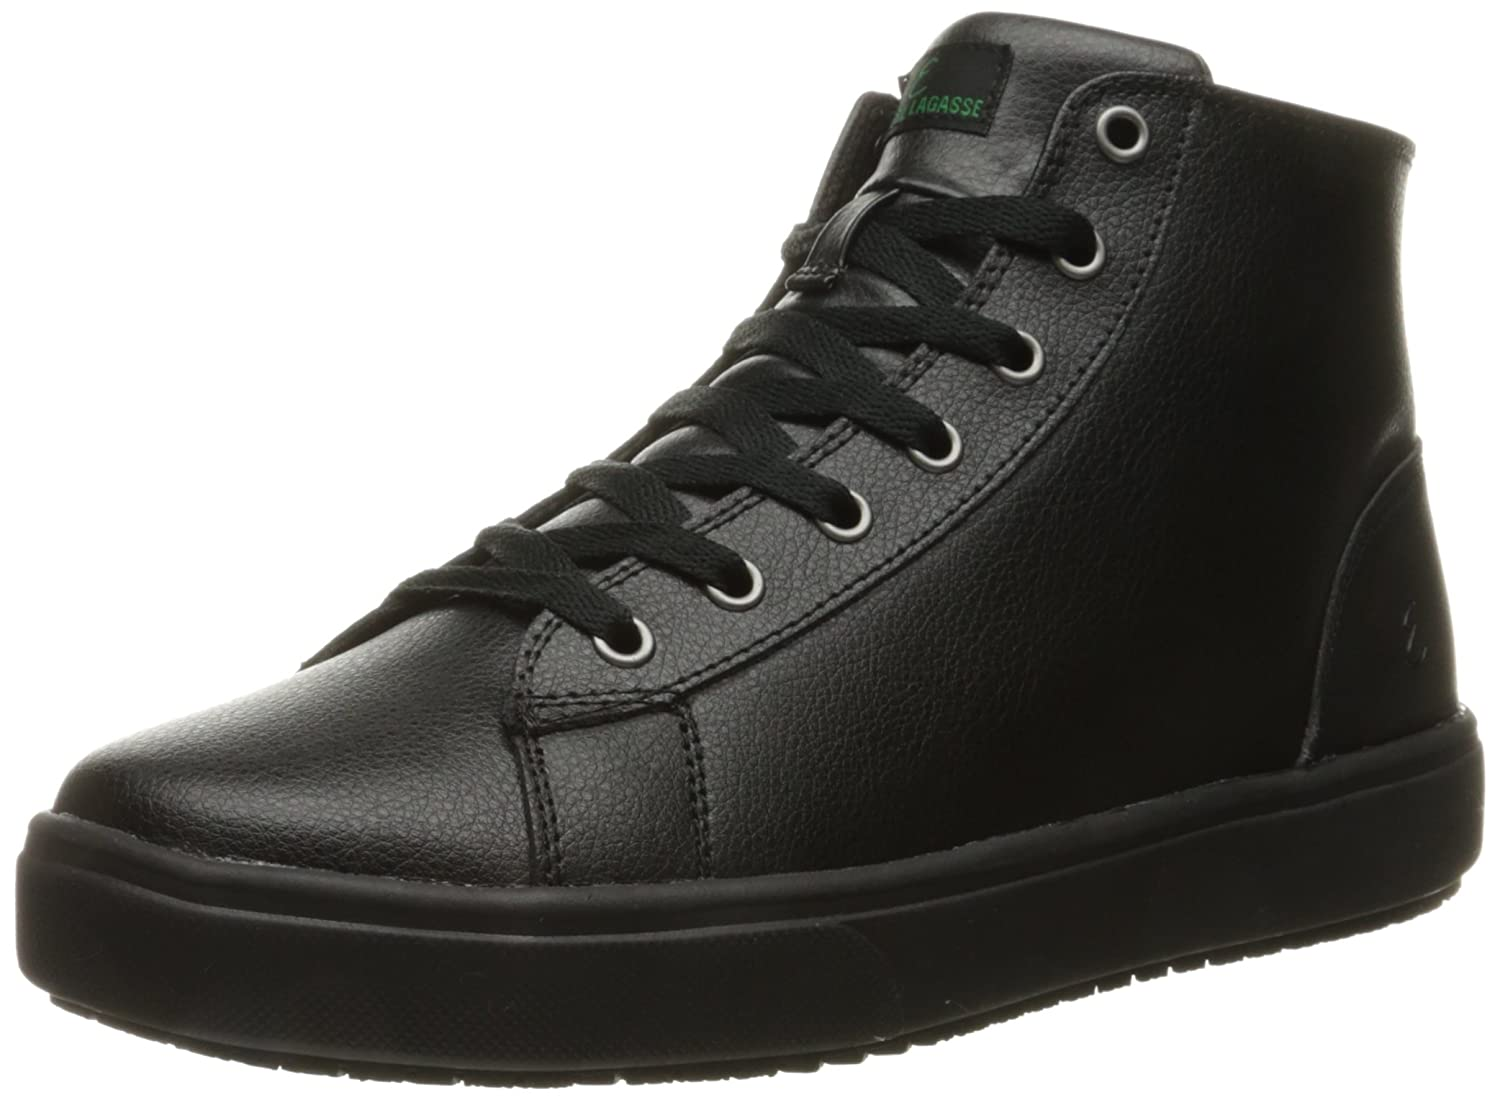 Emeril Canal Men's Leather ... Water-Resistant Sneakers 3OEkF6qMfG